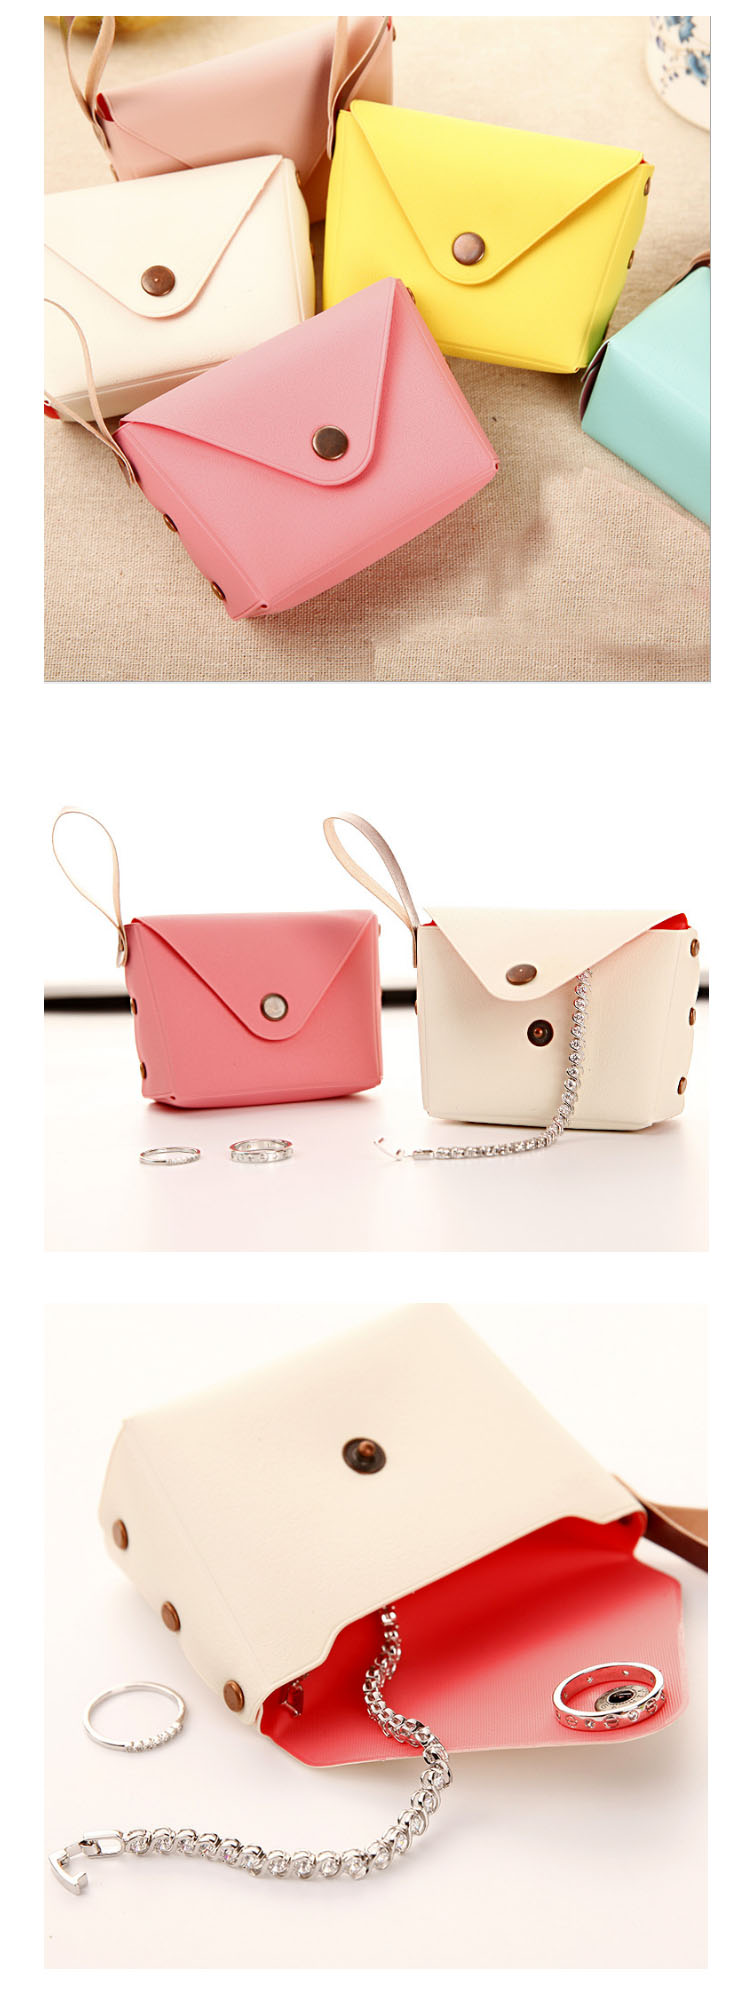 2019 Hot selling Korean style cute candy color Pocket Coin Purse key bag creative Macaron hand bag dime bags Card Cash Wallet